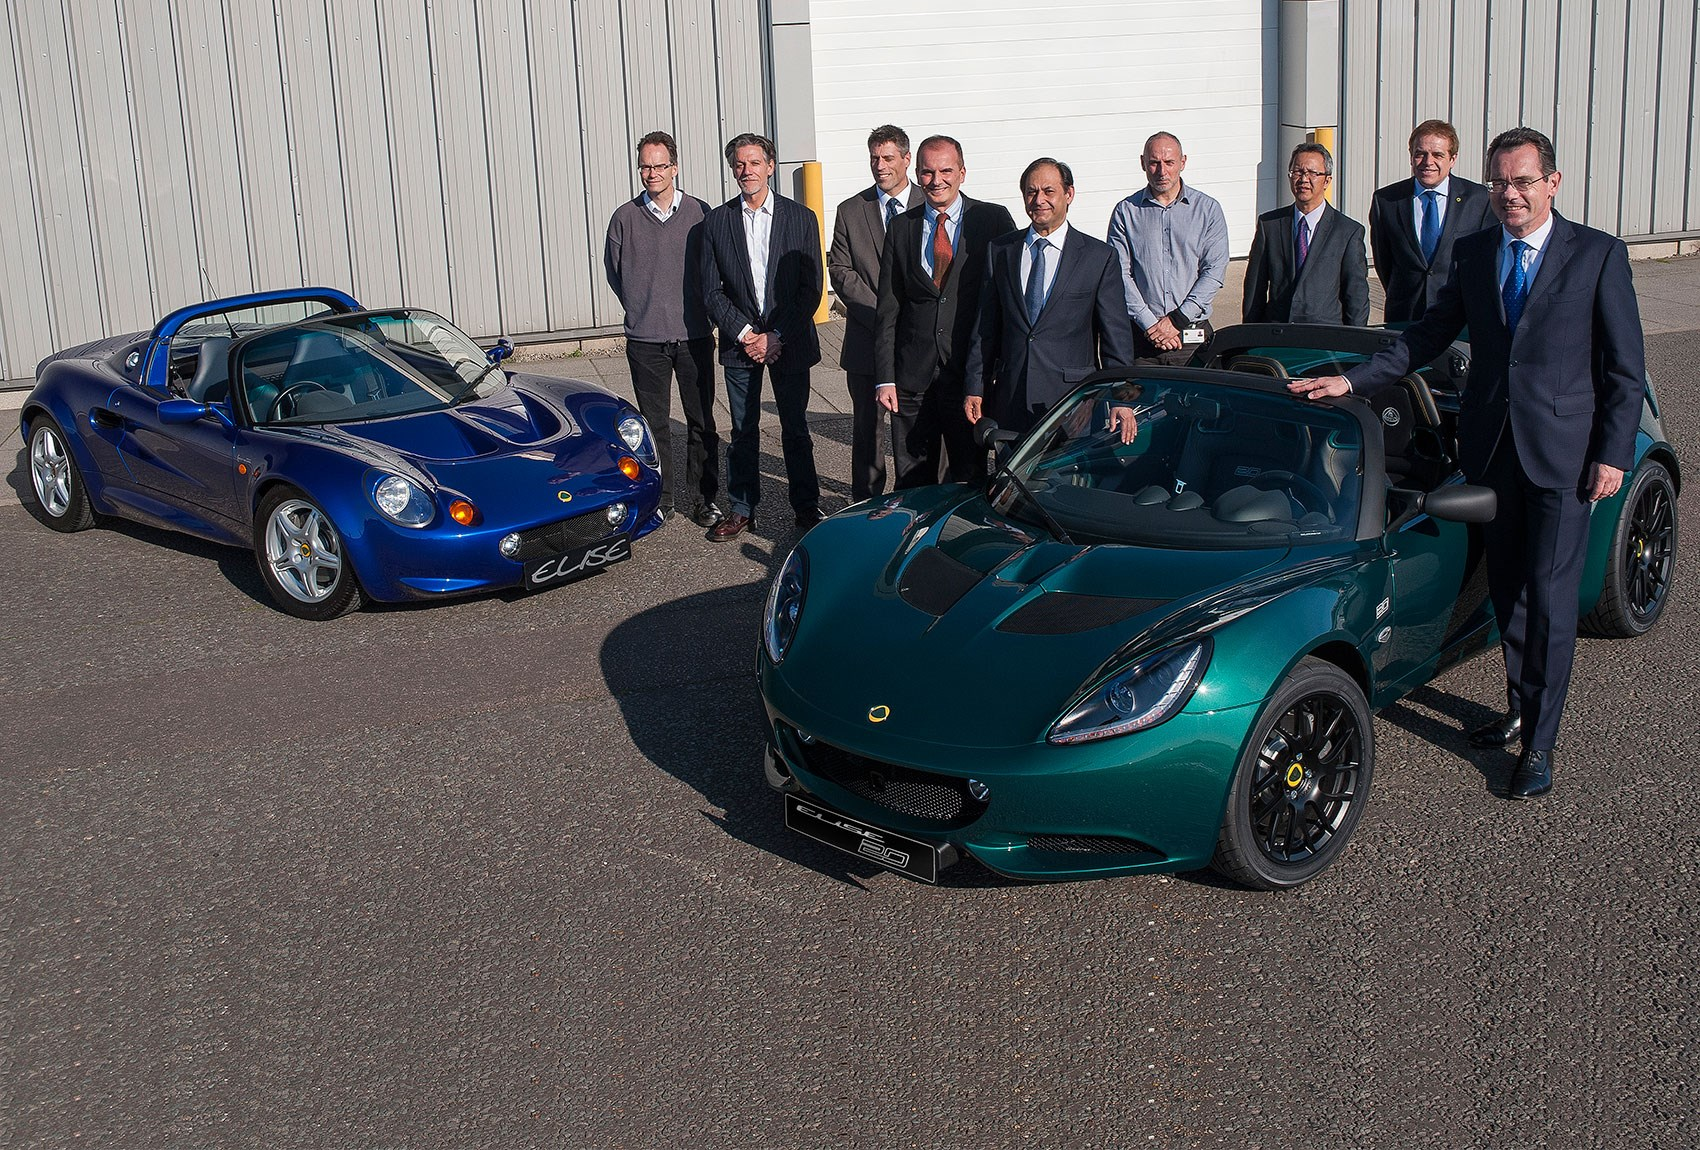 The 40 000th Member Of Lotus Elise Family